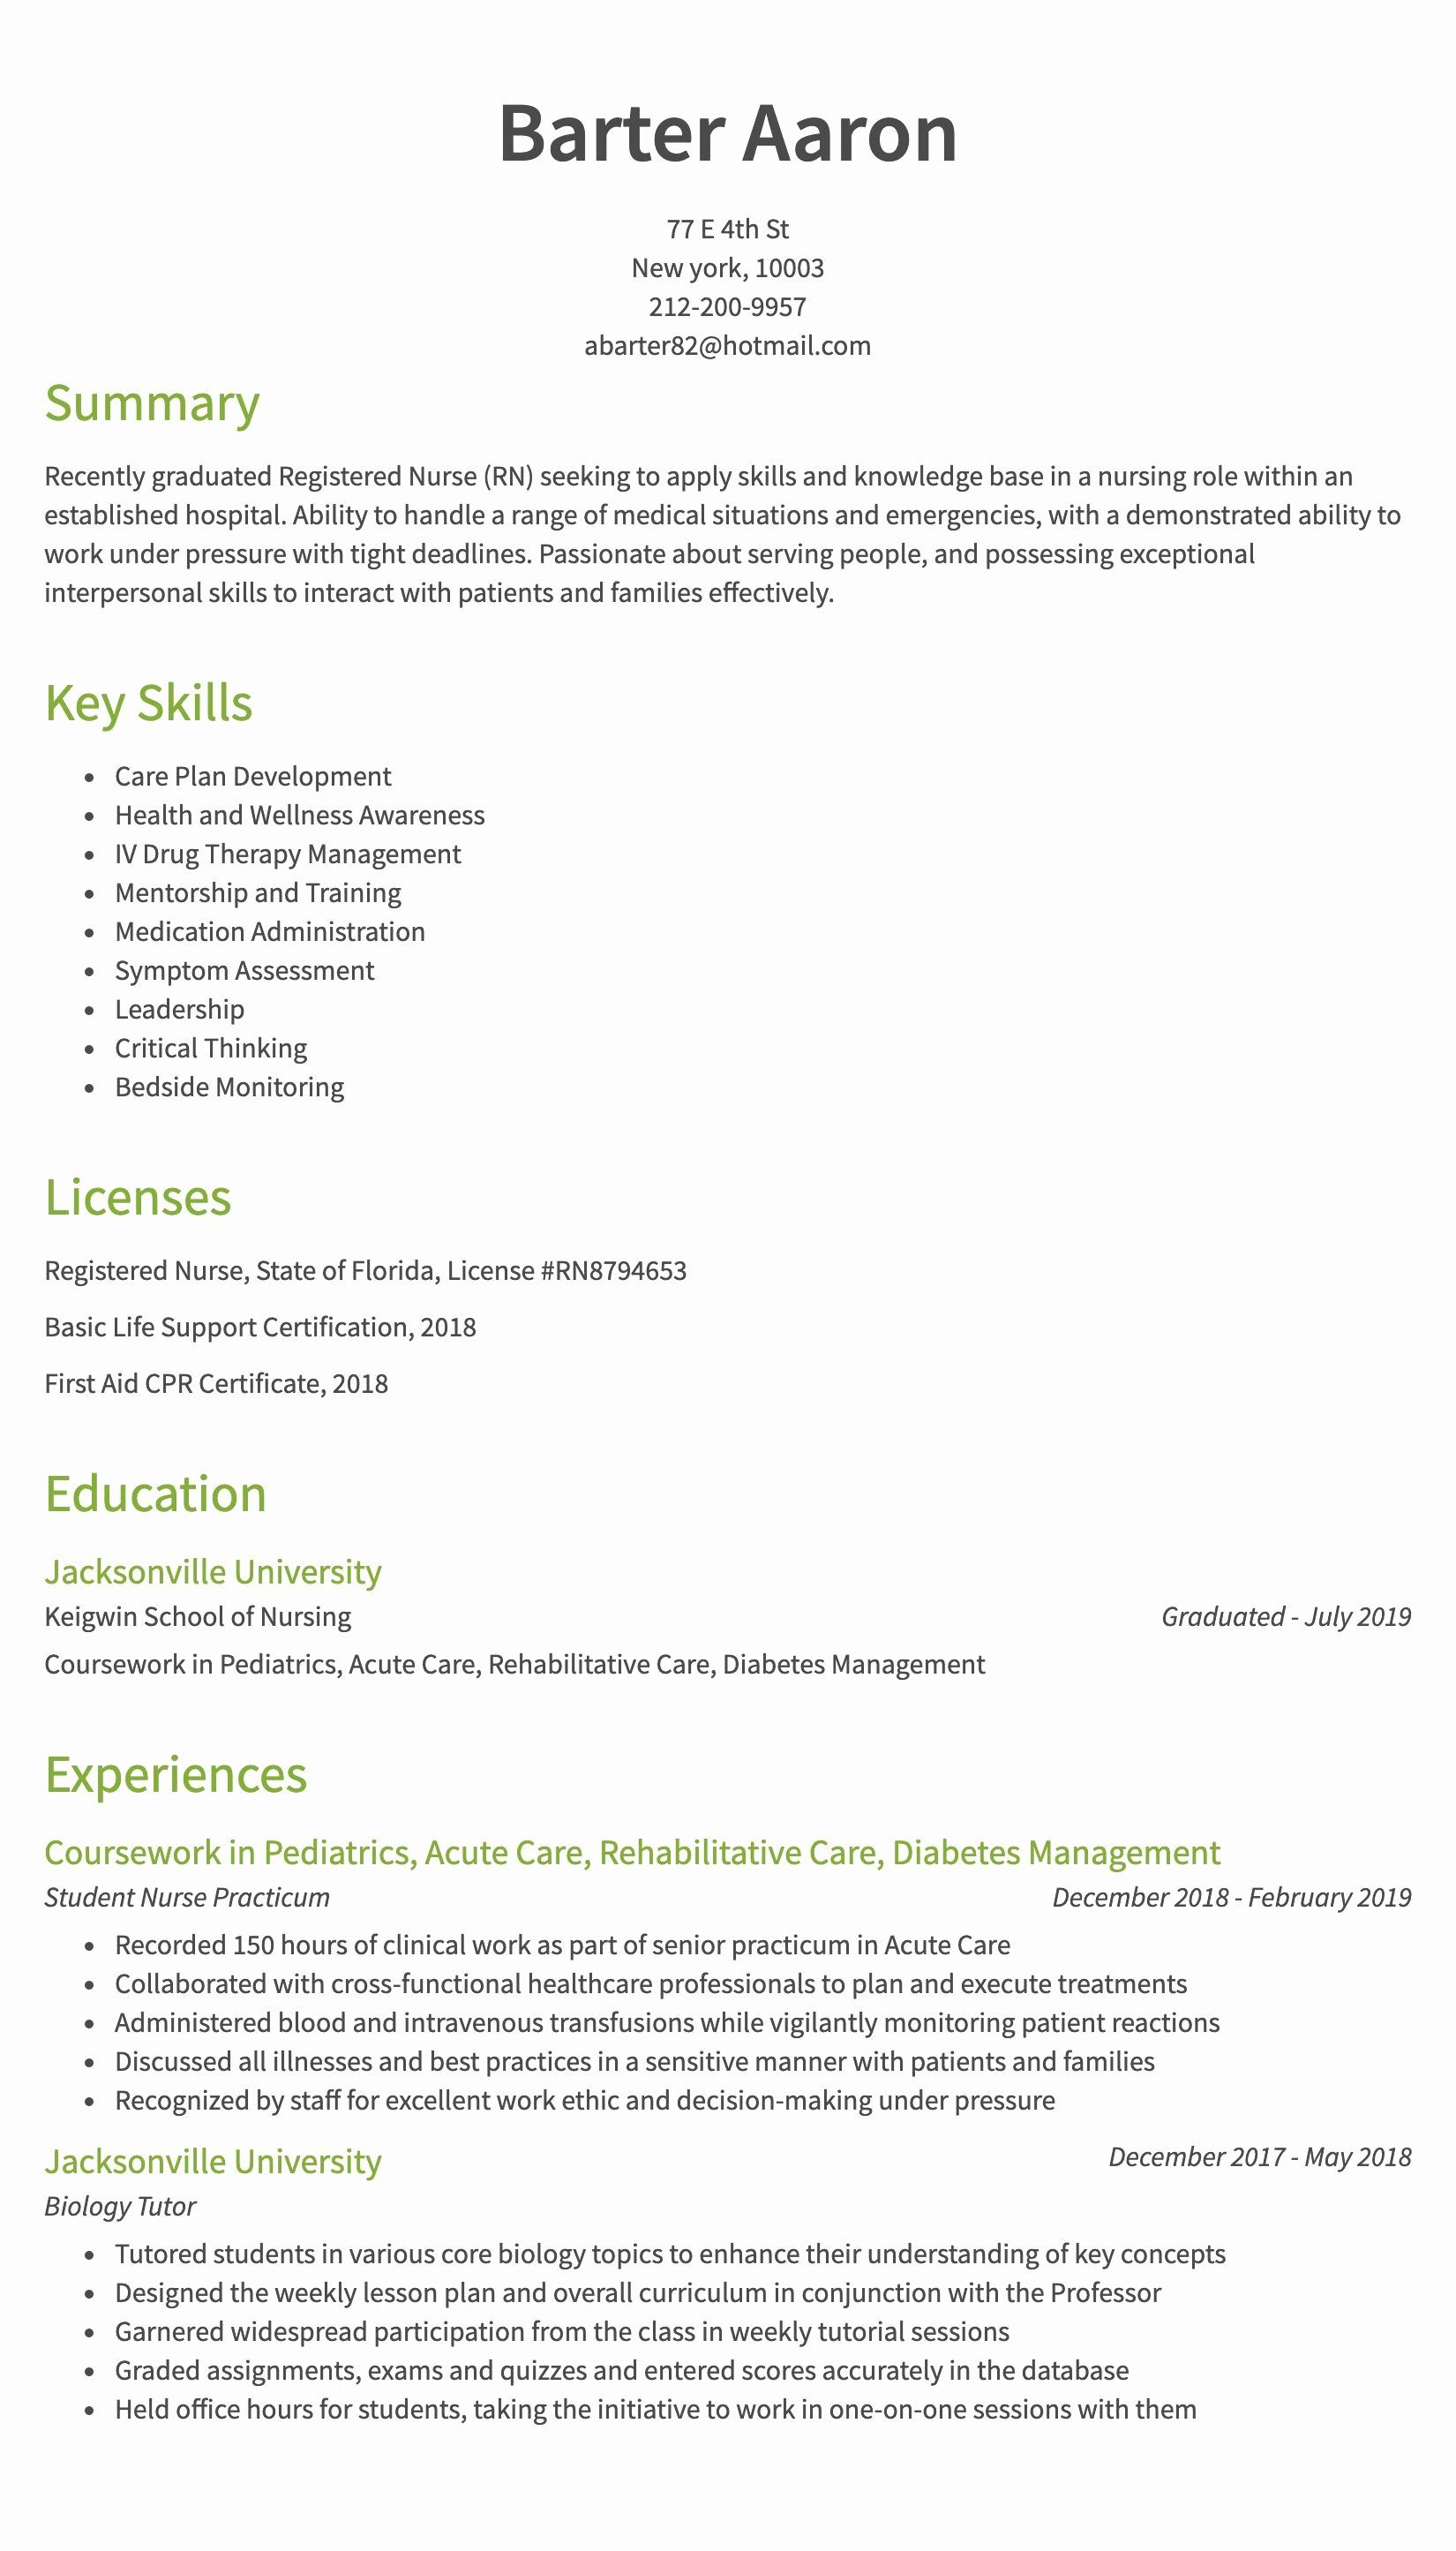 25 Nursing Clinical Experience Resume in 2020 Registered